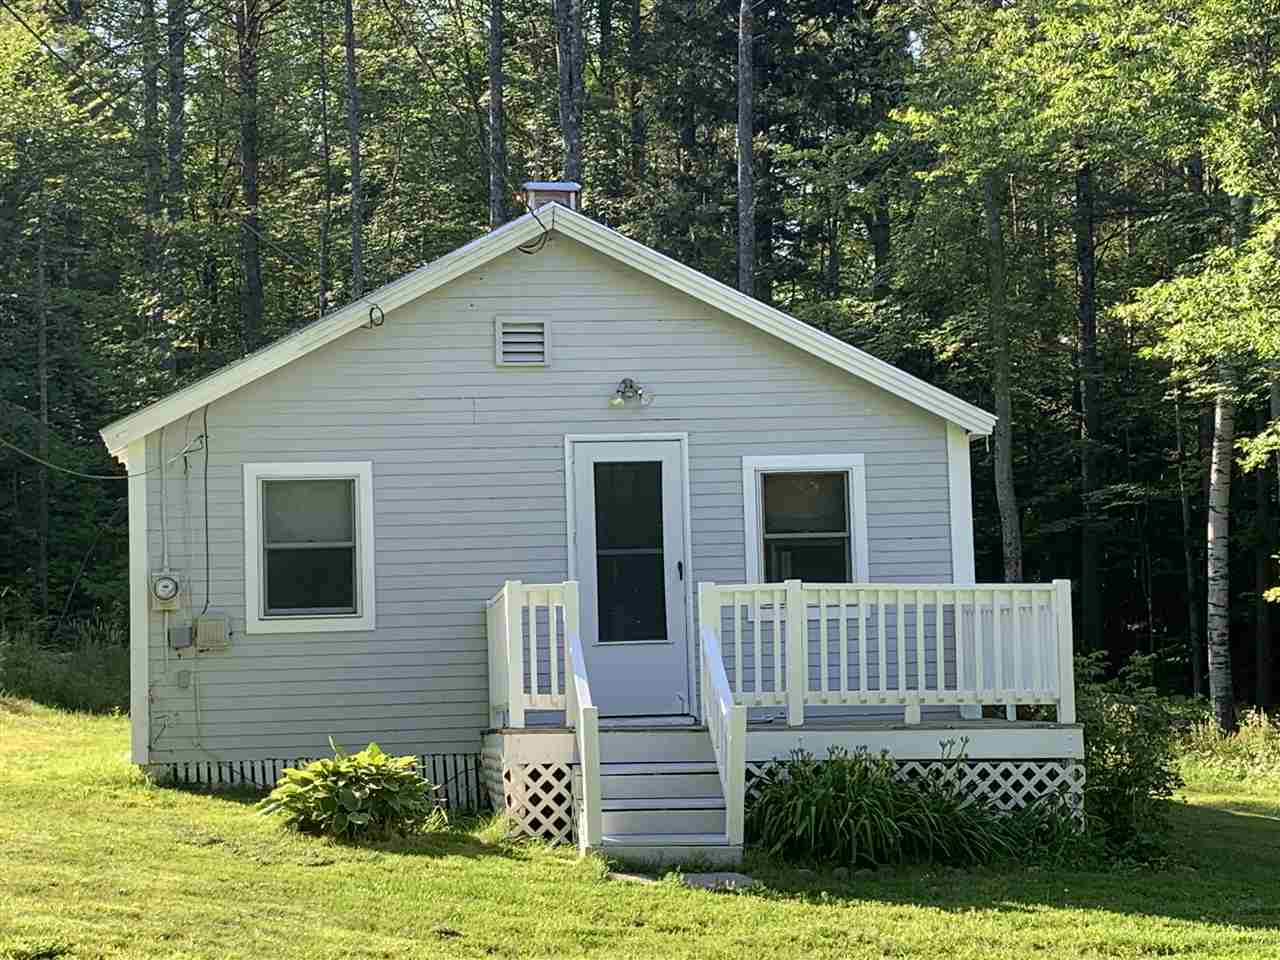 Awesome Bristol Nh Real Estate For Sale Homes Condos Land And Best Image Libraries Counlowcountryjoecom